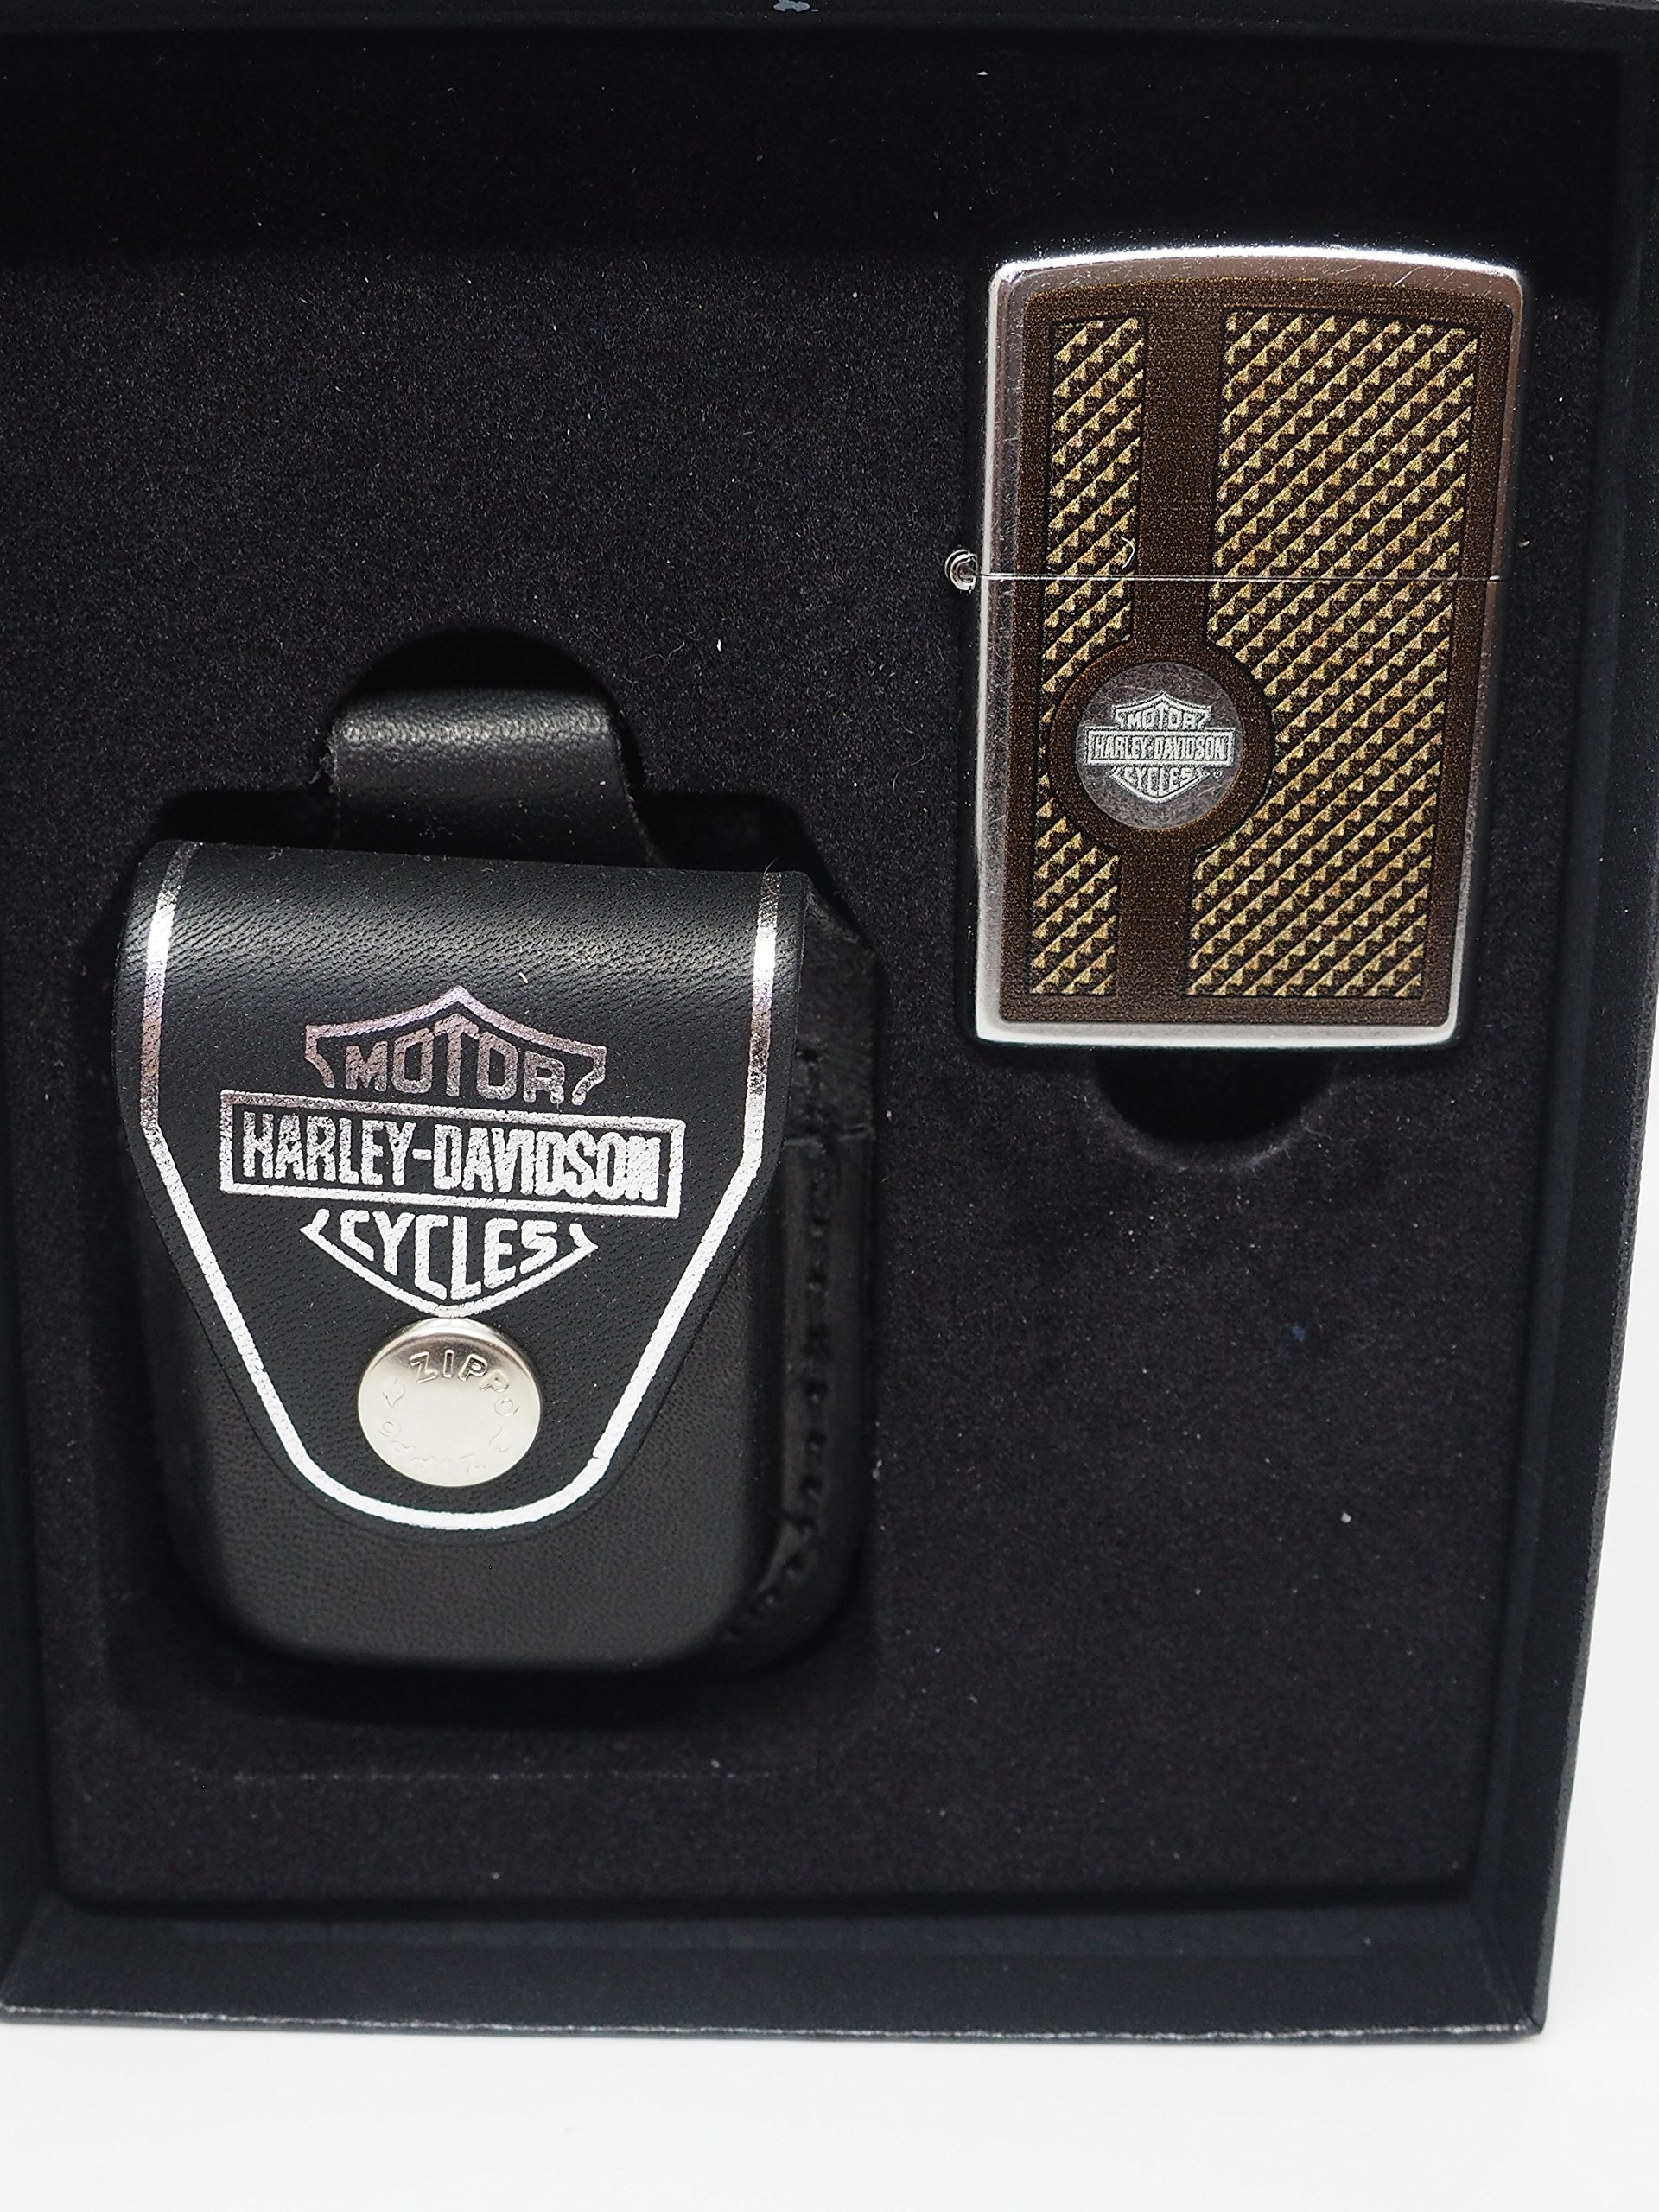 Gorgeous Harley Davidson Logo Zippo Lighter Leather Pouch Gift Set